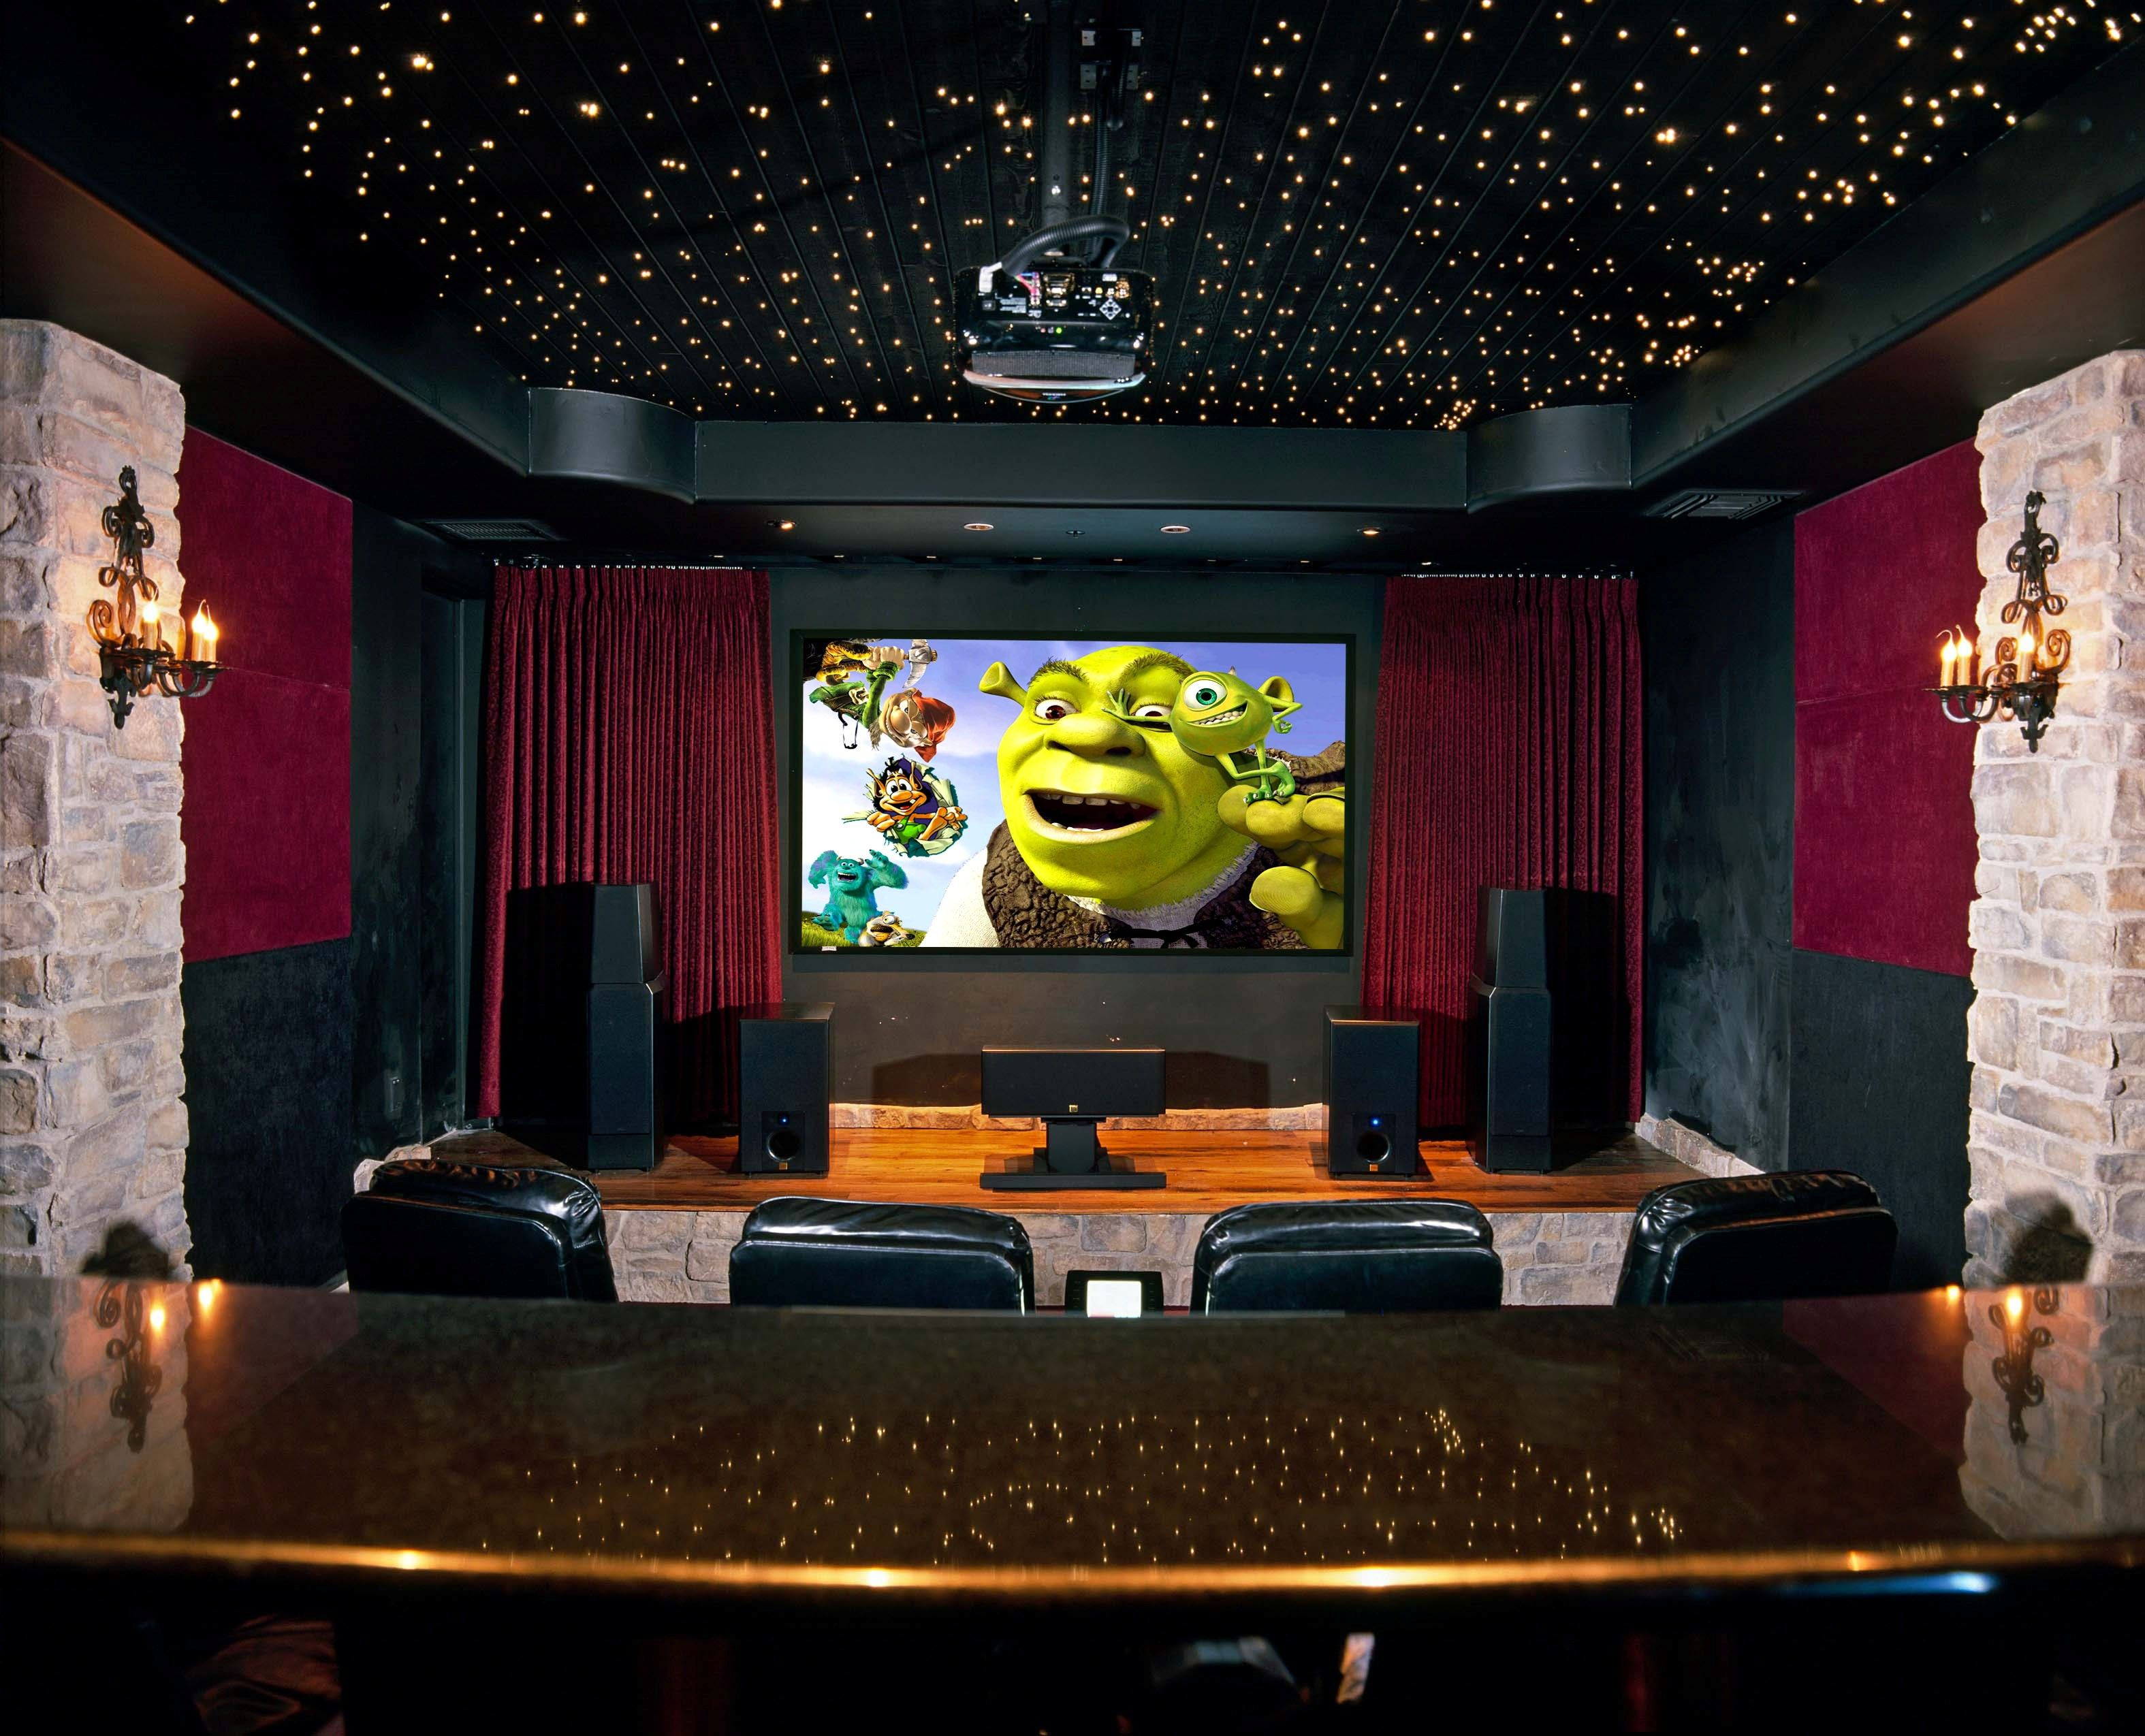 creative home cinema decor decor modern on cool fresh - Home Theater Decor